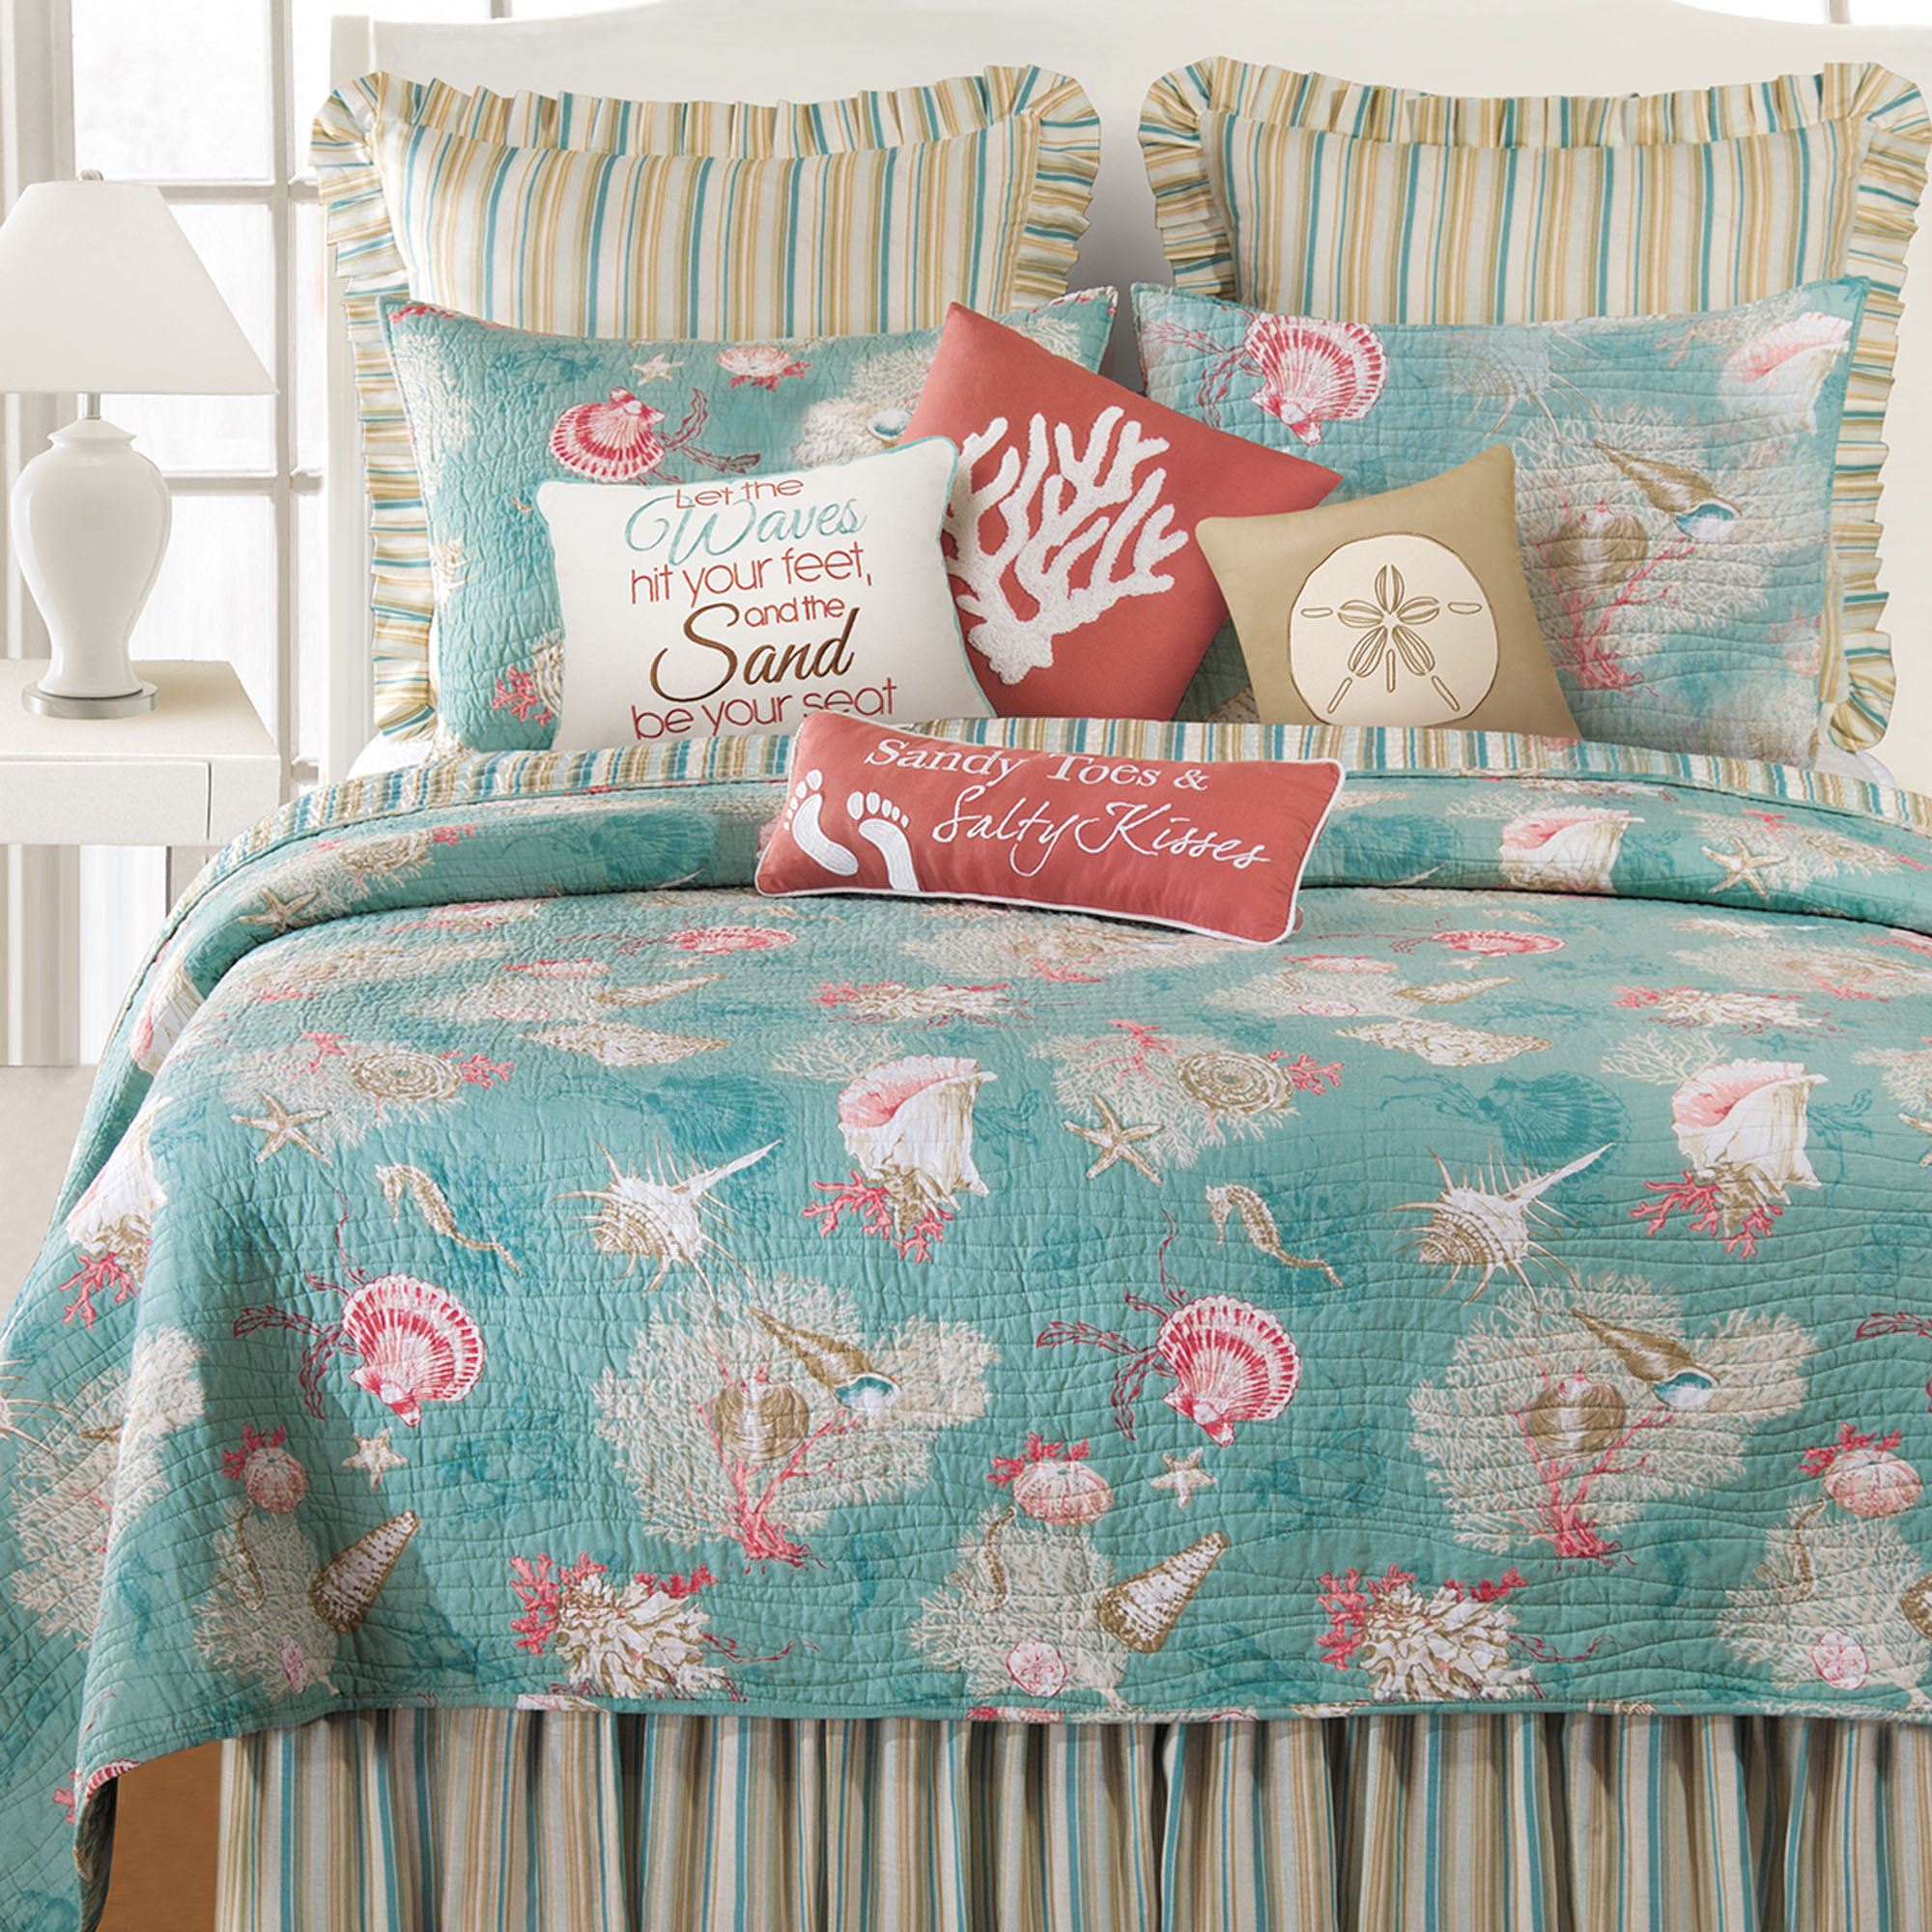 Santa Catalina Coastal Seashell Quilt Bedding : teal quilt bedding - Adamdwight.com